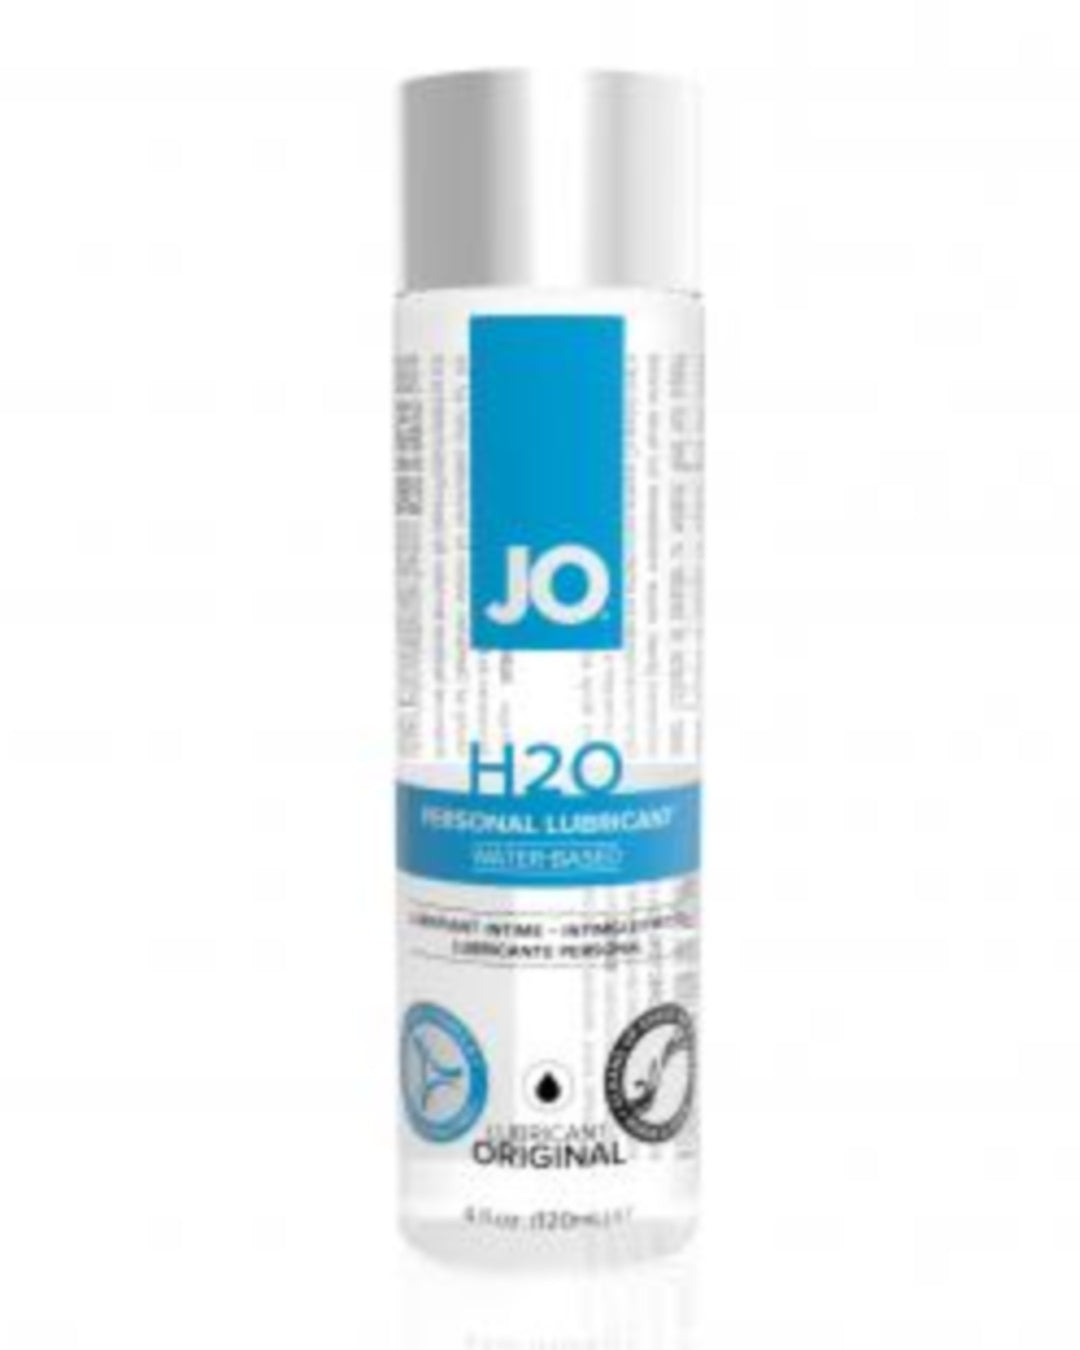 Jo H2O Cooling Water Based Cooling Lubricant 4 oz